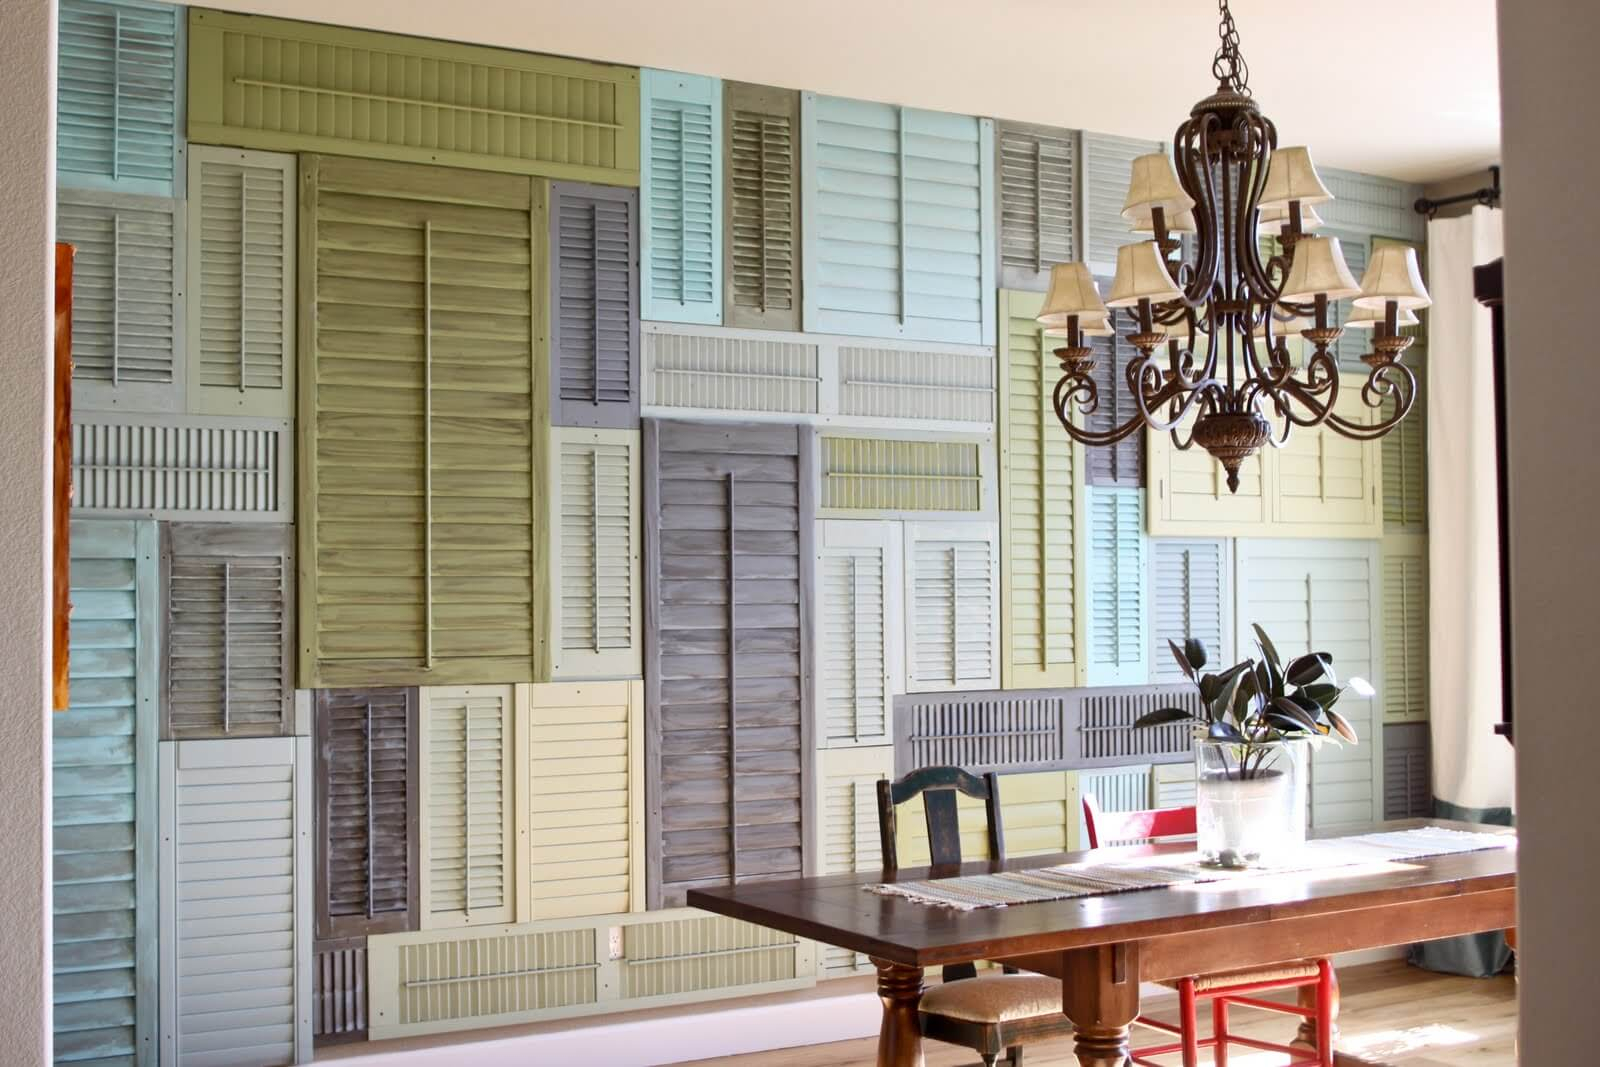 34 Best Old Shutter Decoration Ideas And Designs For 2019 Pertaining To Most Recent Shutter Window Hanging Wall Decor (Gallery 12 of 20)